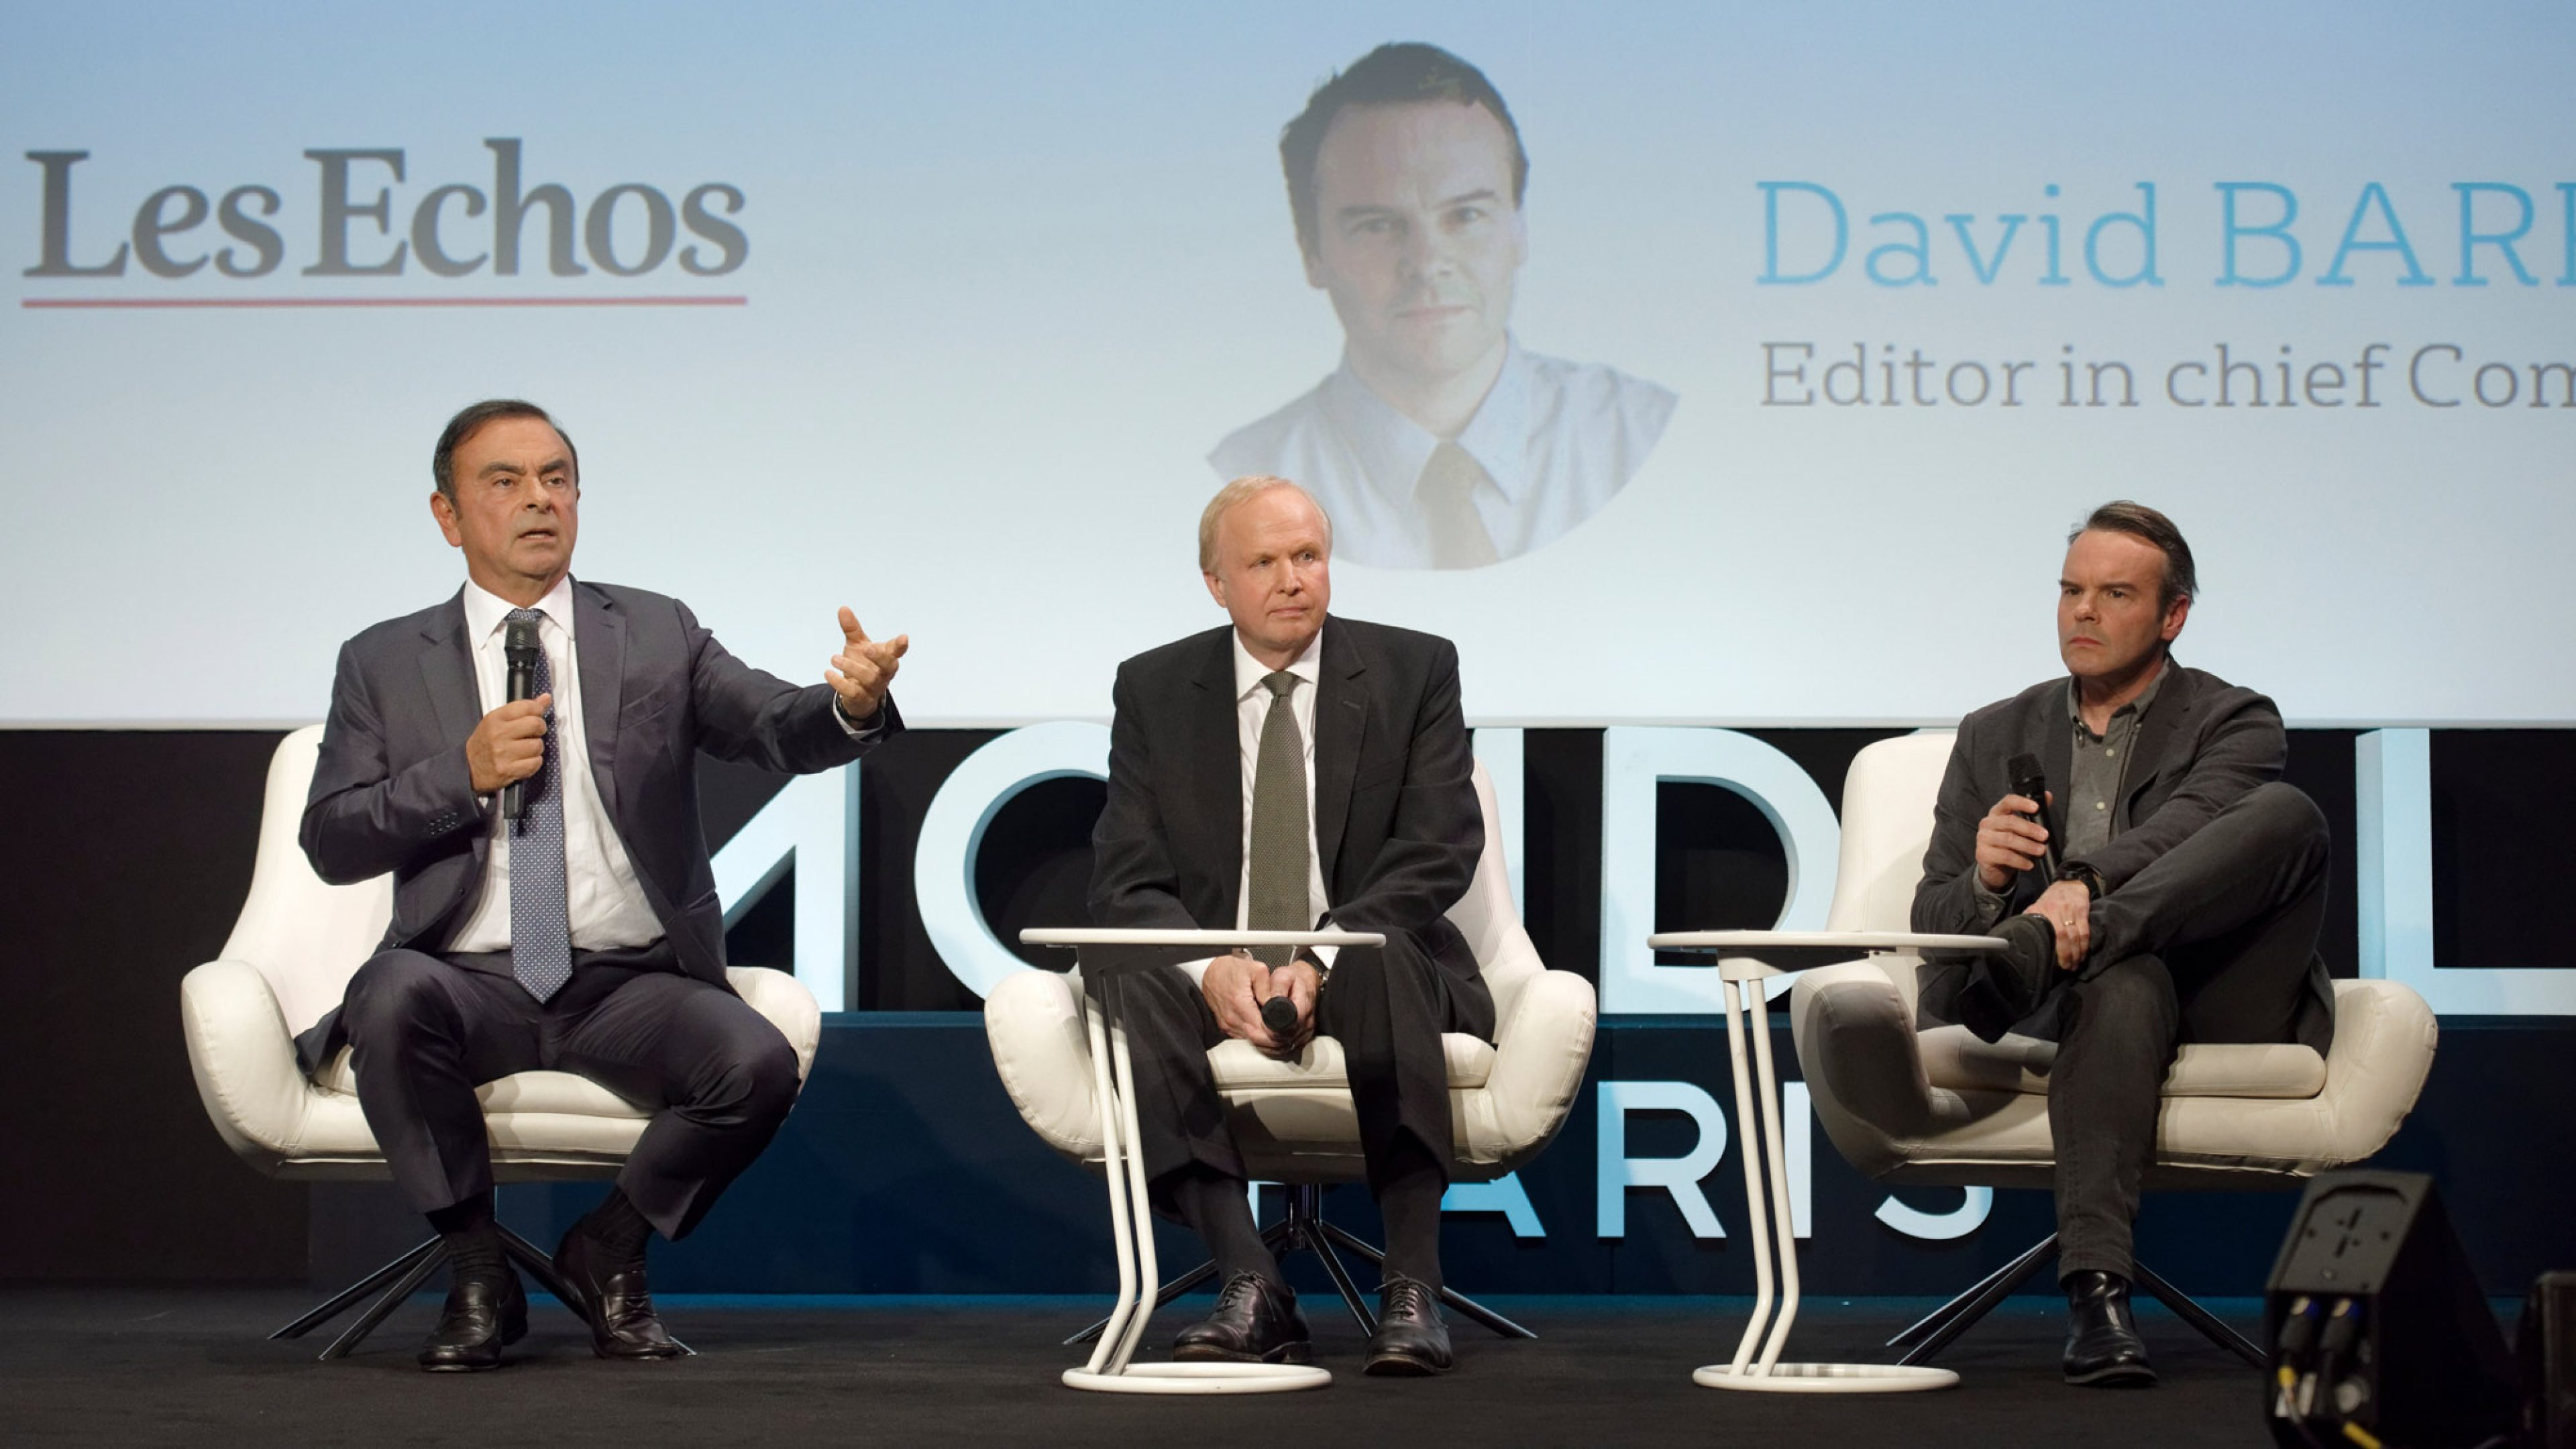 BP CEO Bob Dudley shares the stage with Carlos Ghosn, chairman and CEO of the Renault Nissan Mitsubishi Alliance, left, and David Barroux, editor in chief, companies section for Les Echos, right, at the Paris Motor Show